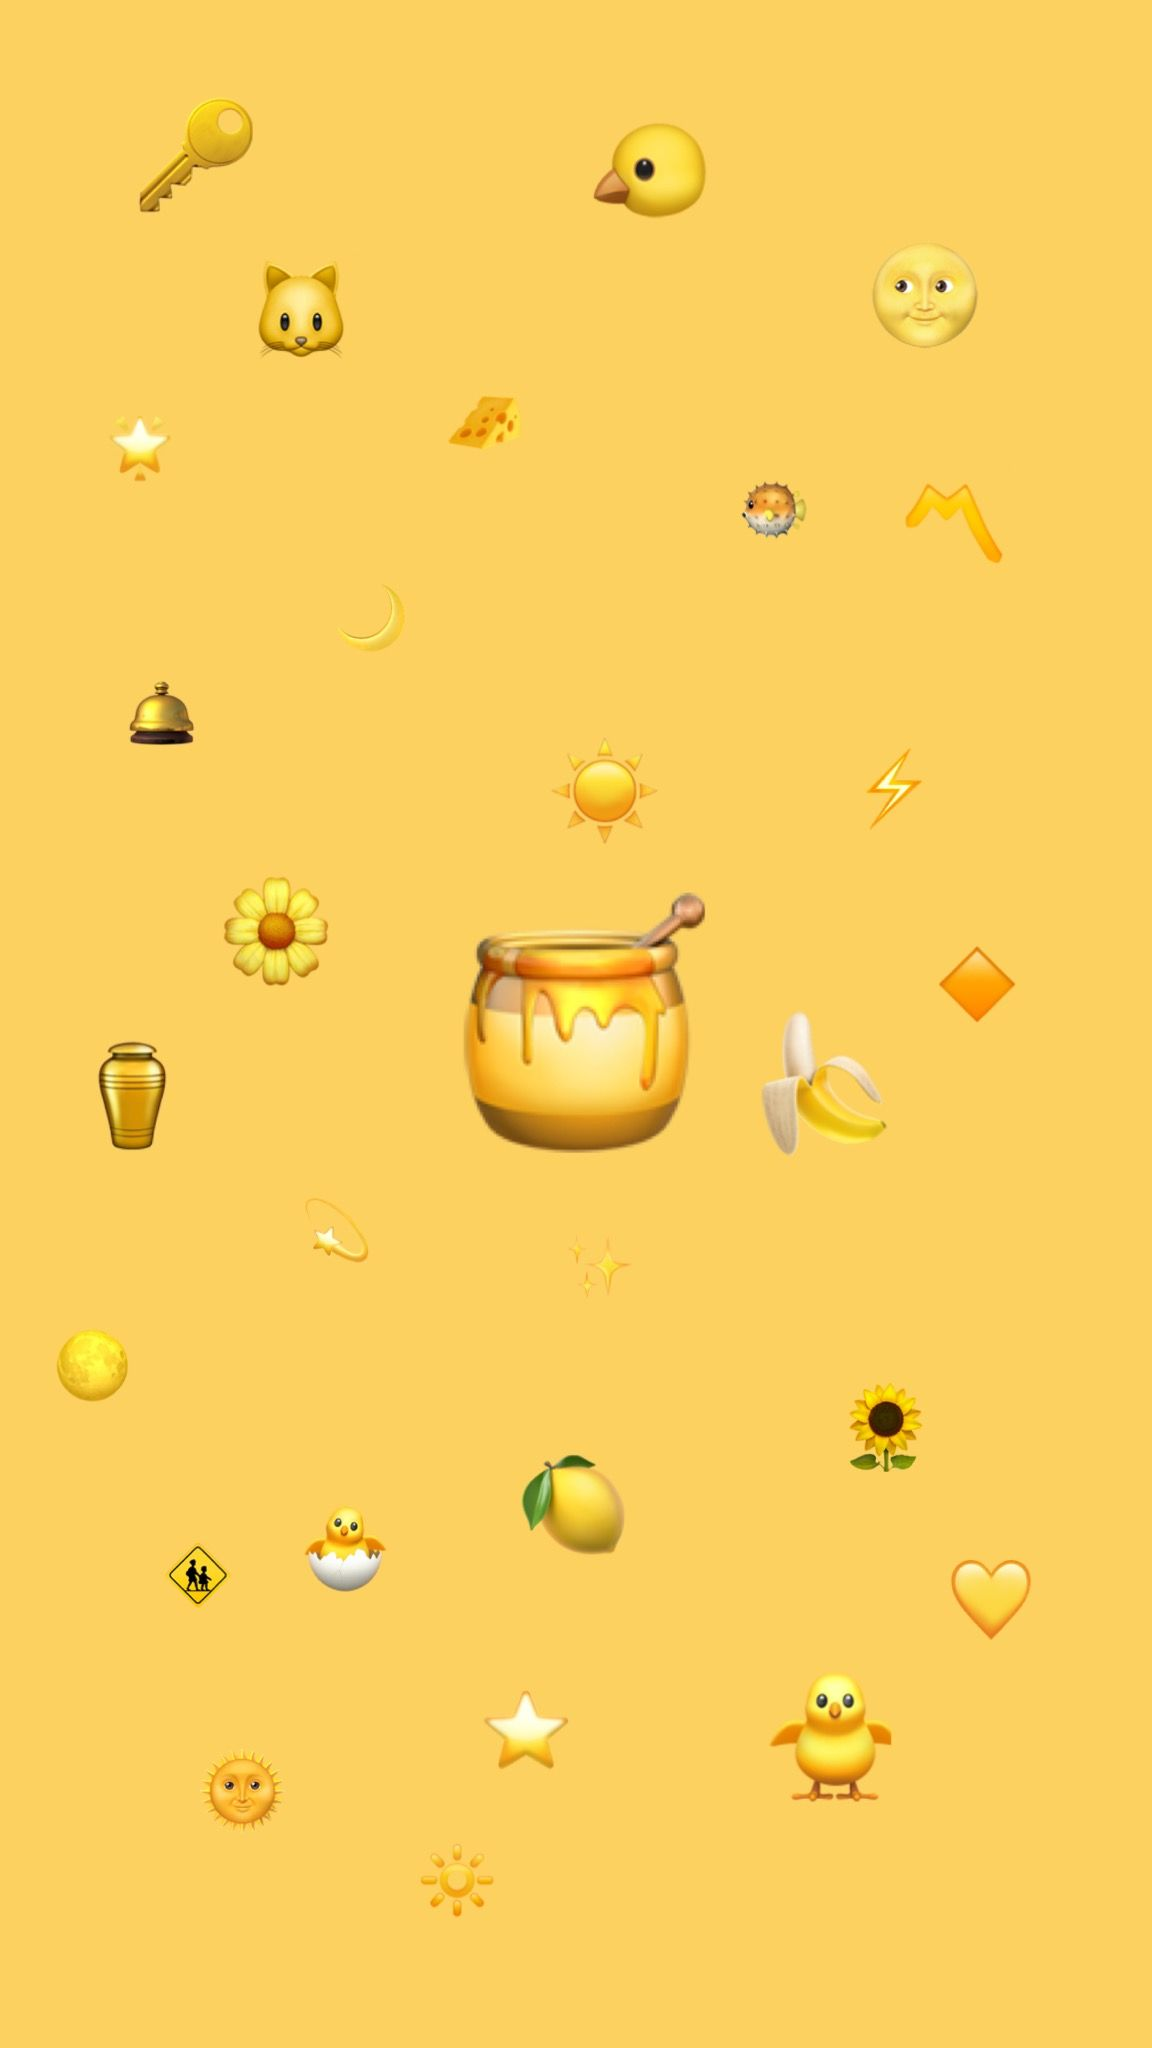 Emoji mustard yellow wallpaper Cute emoji wallpaper